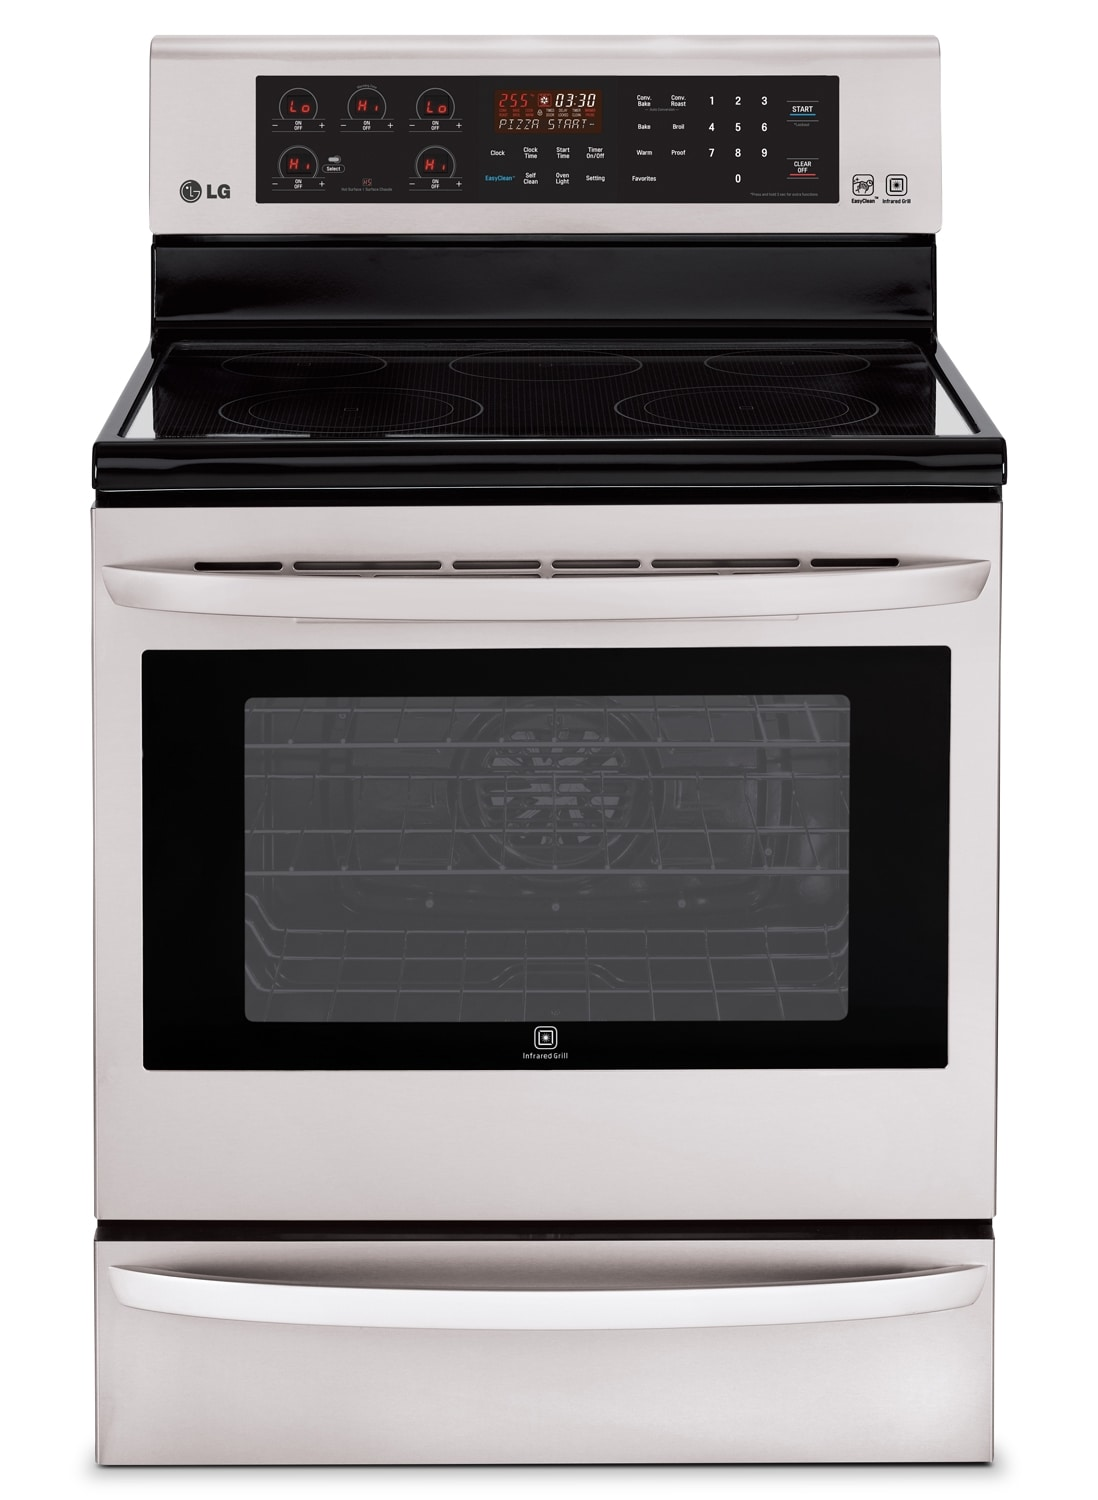 Cooking Products - LG Appliances Range LRE6385ST